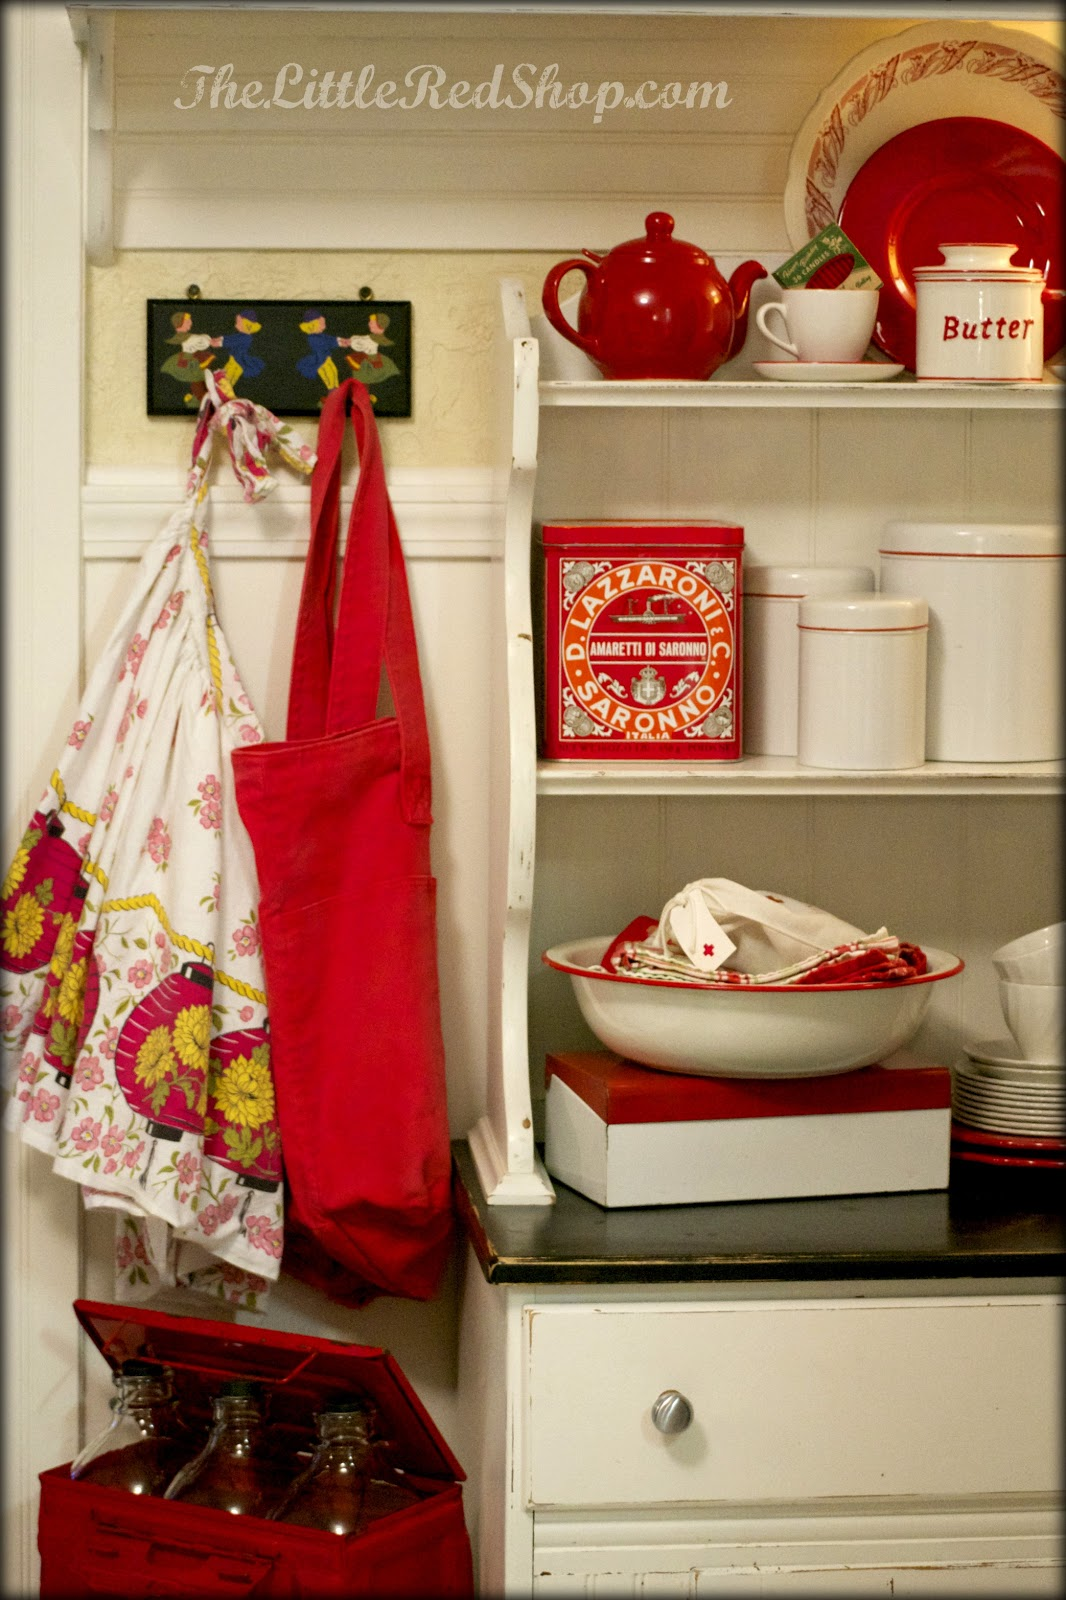 The Little Red Shop Vintage Farmhouse Kitchen ~ Before & After